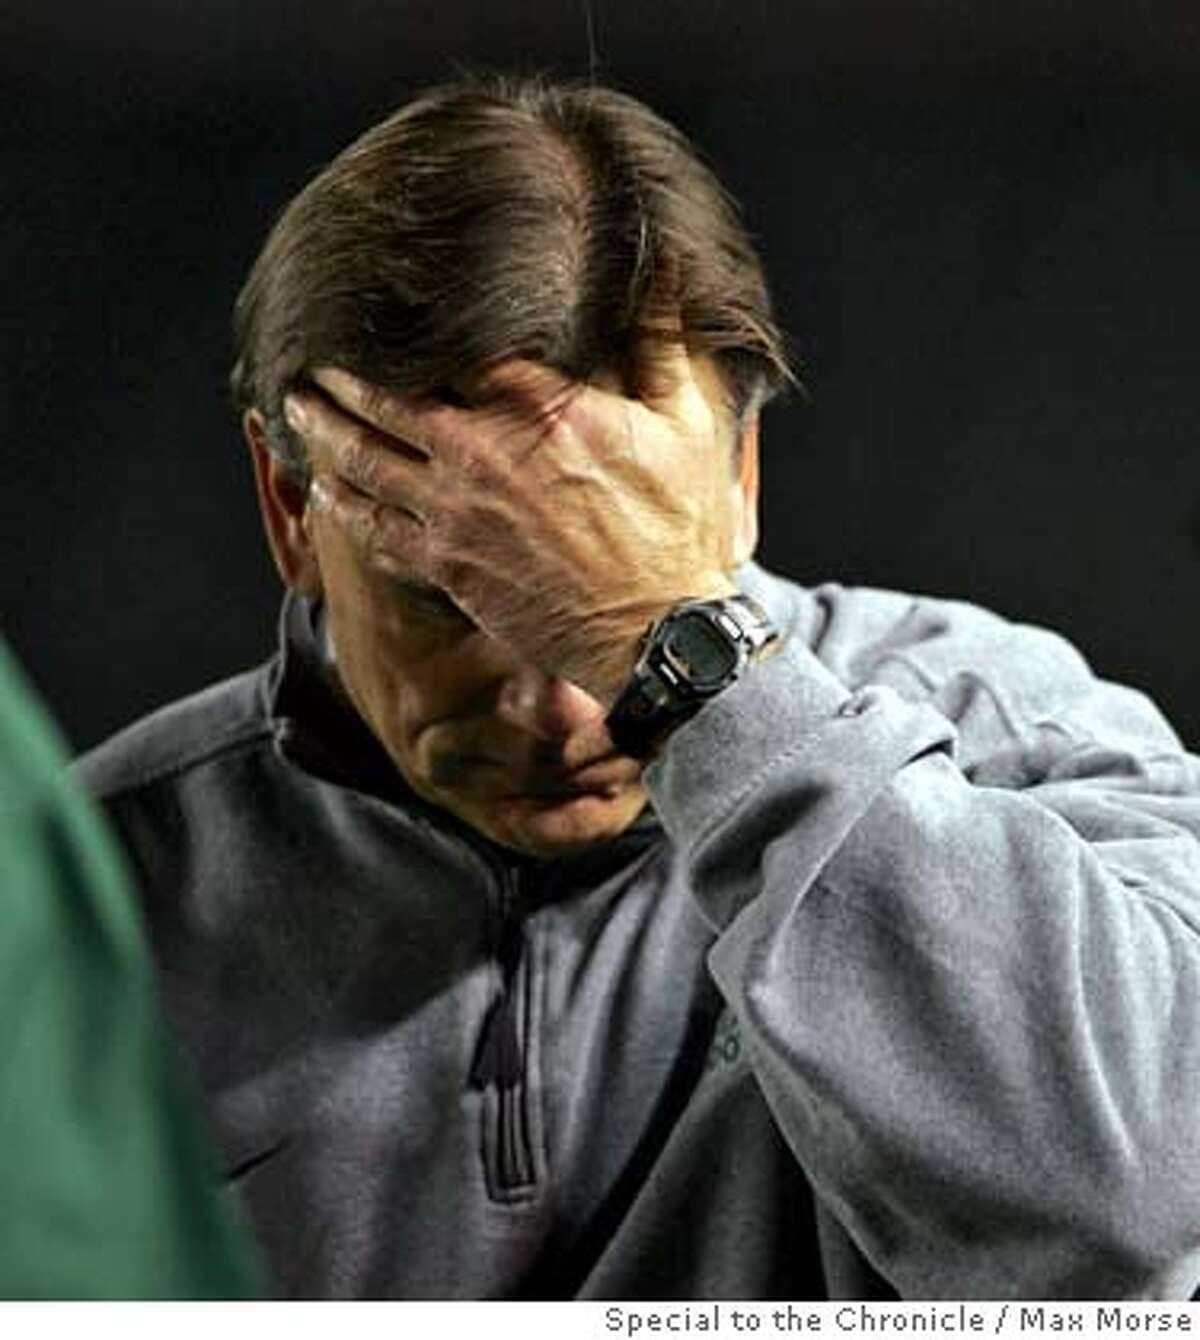 HH0S0883.JPG STATE CHAMPS De La Salle coach Bob Ladoceur touches his head against Canyon in the 2006 Division I CIF State Football Championship Bowl Game at the Home Depot Center in Carson, CA December 16, 2006. By MAX MORSE/SPECIAL TO THE CHRONICLE